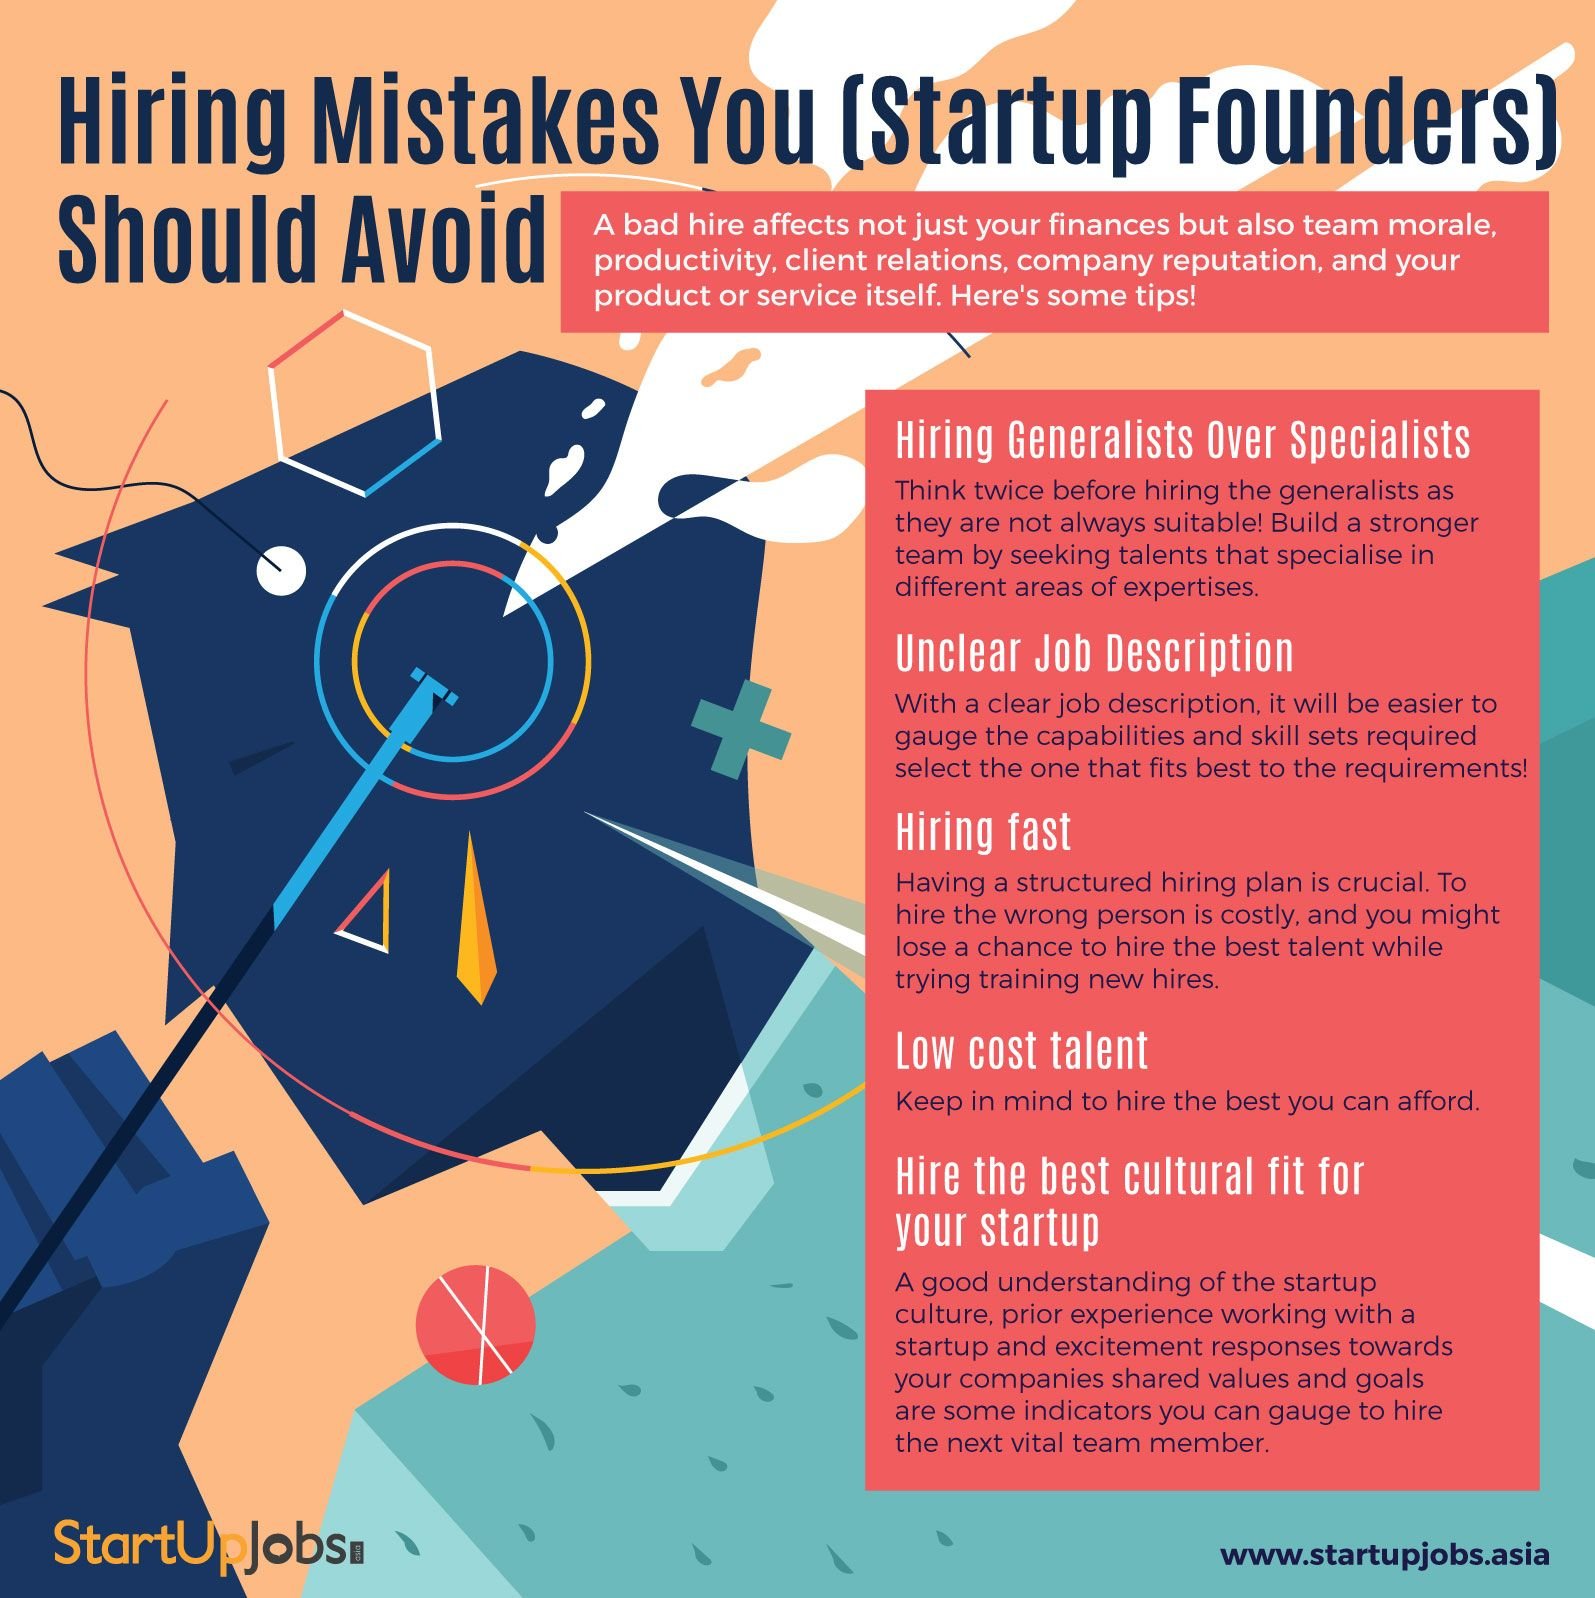 #Startups! Are you making these #Hiring Mistakes? Check it here: http://bit.ly/29G700U   Visit: http://www.startupjobs.asia